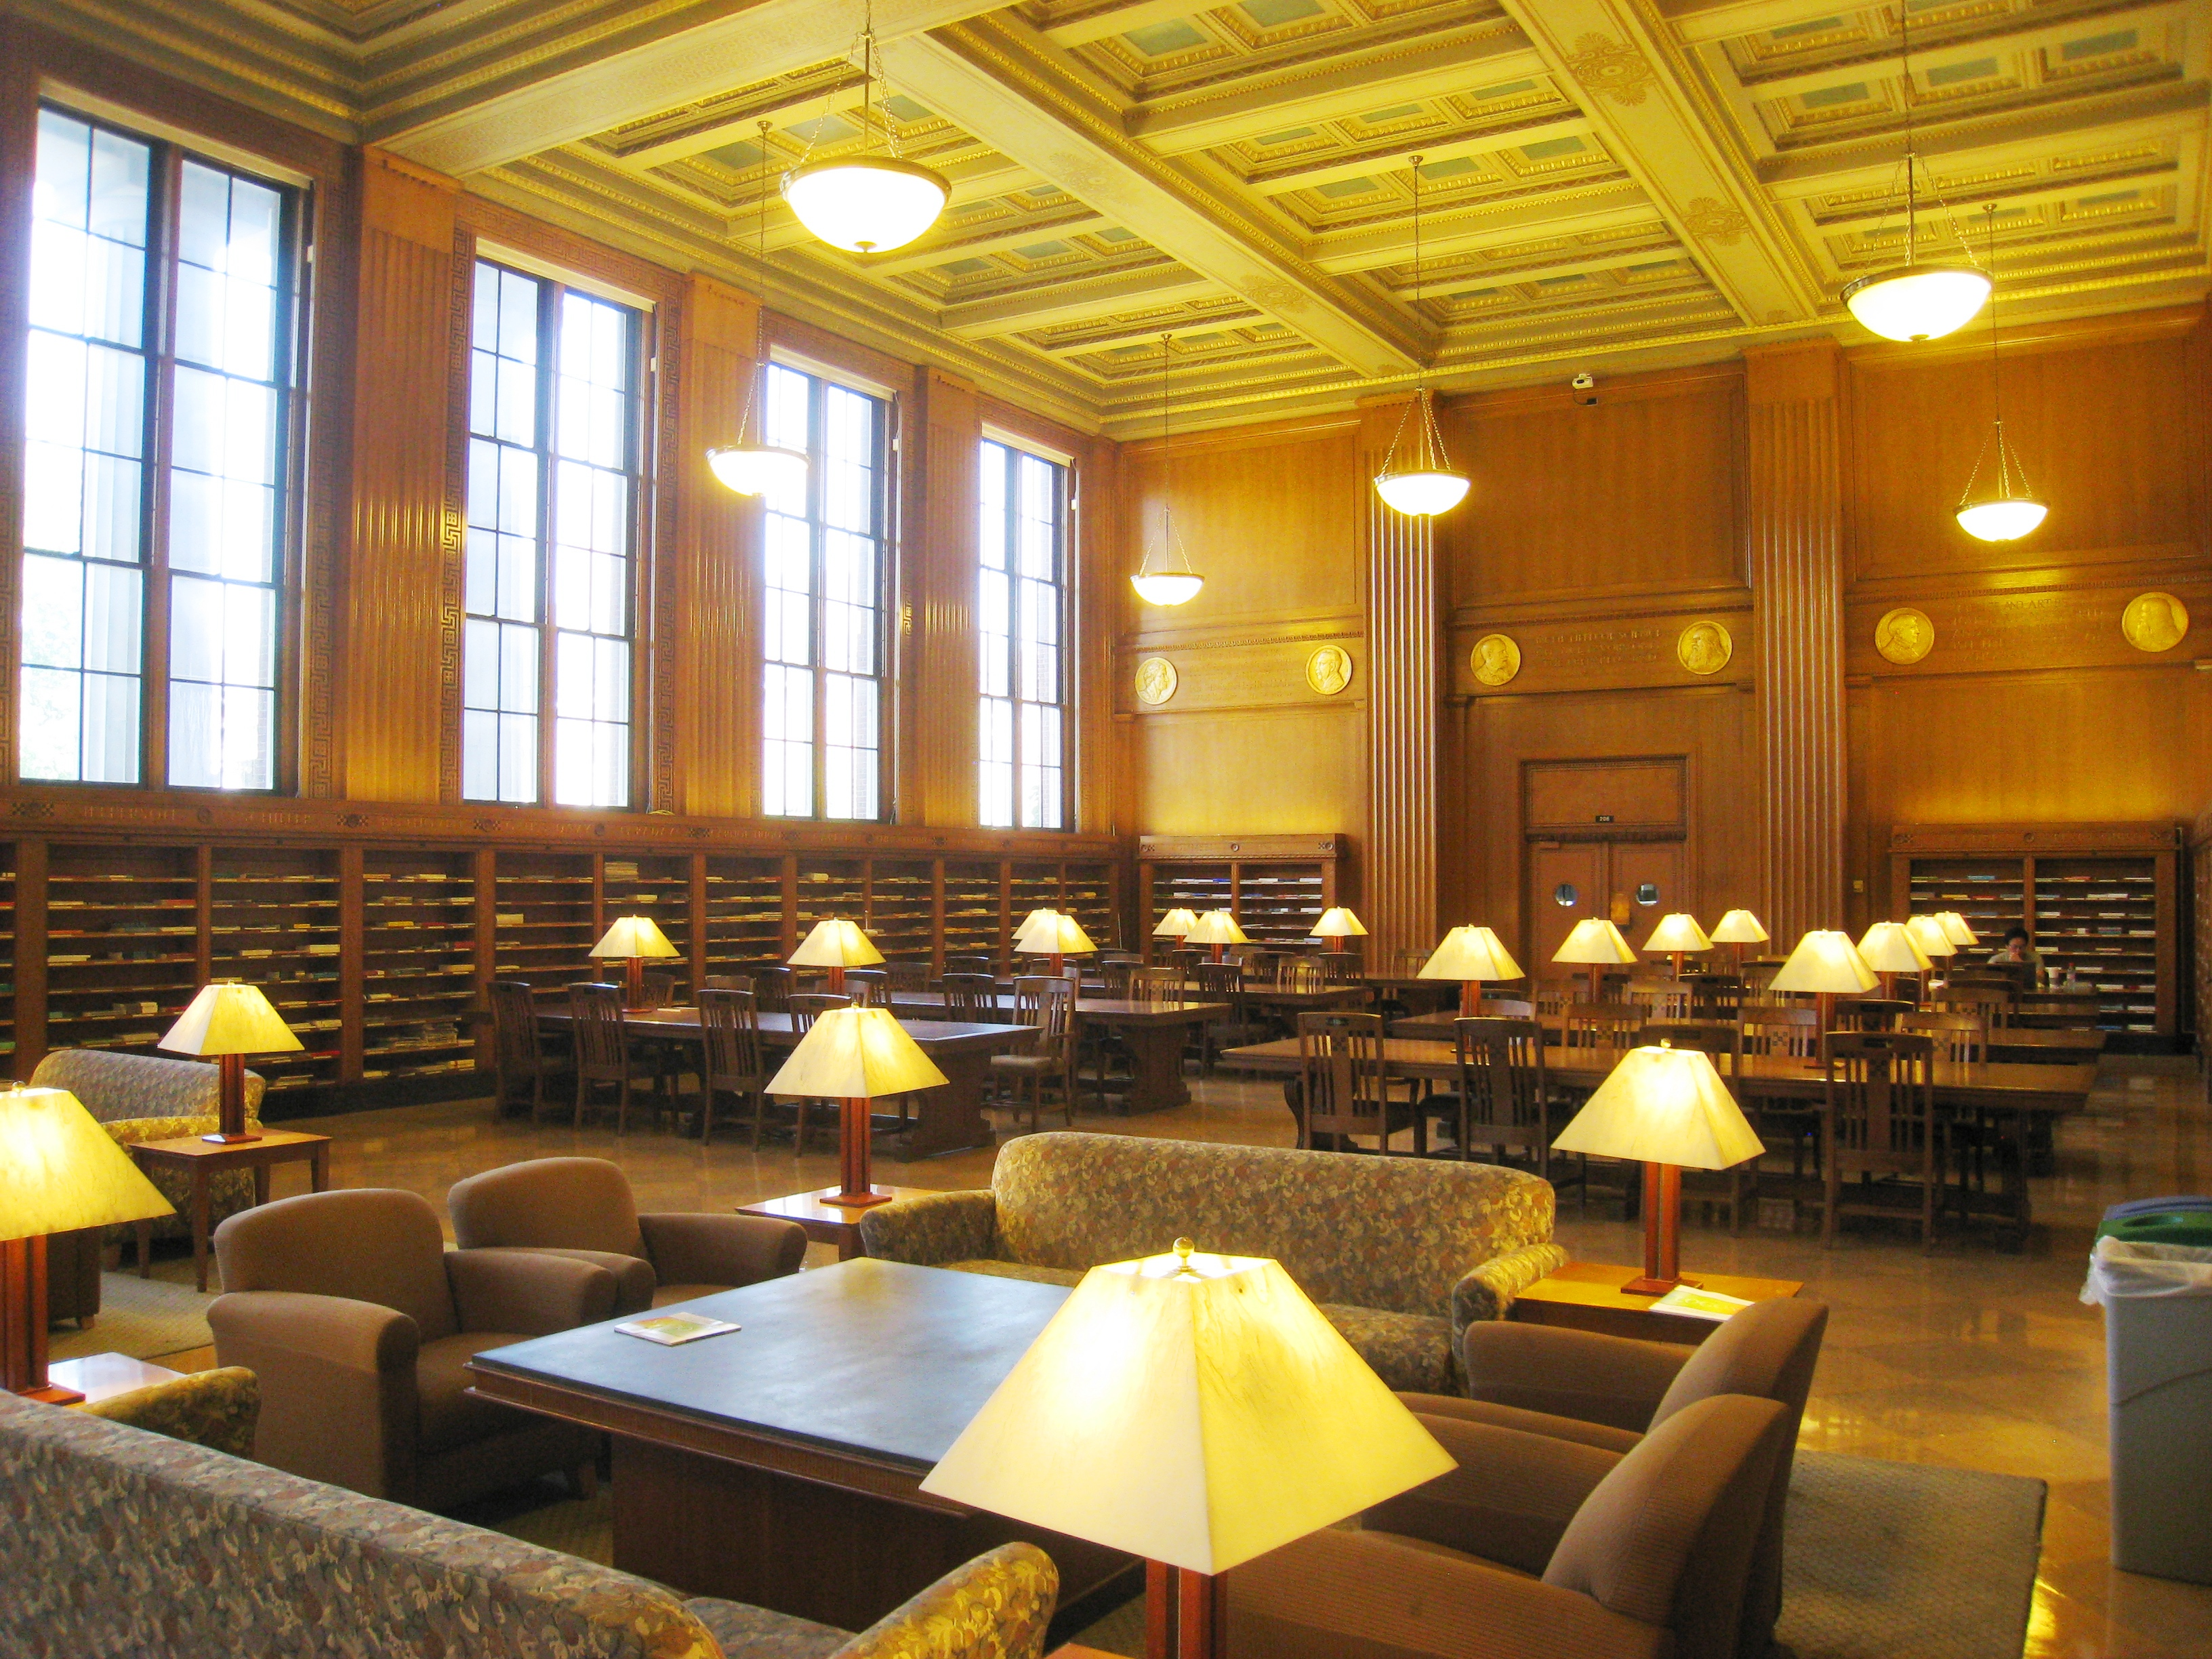 Library Reading Room Images